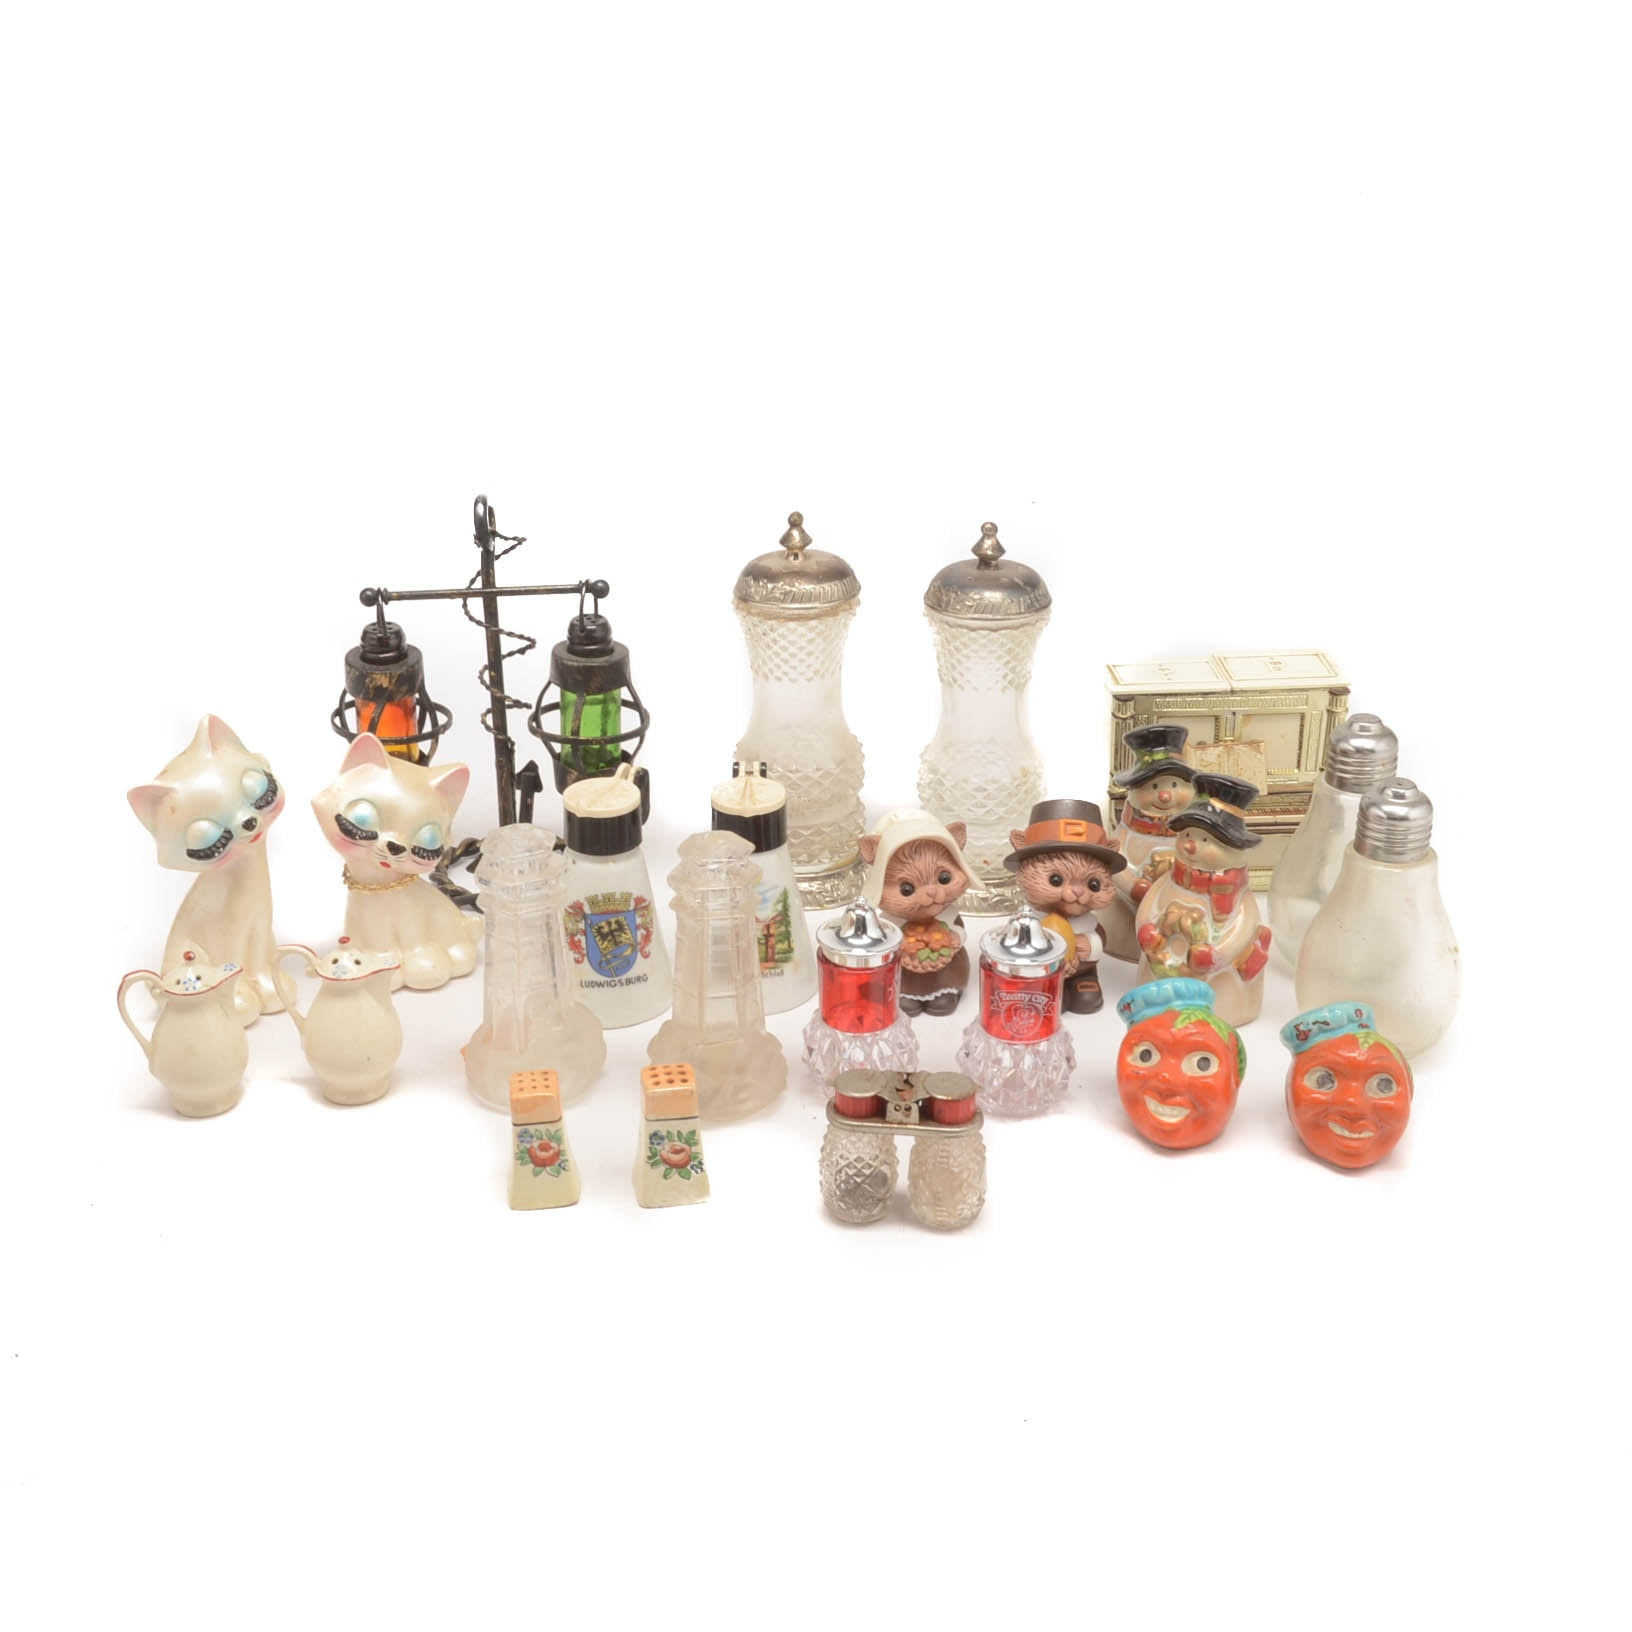 Vintage Salt and Pepper Shakers Featuring Lenox